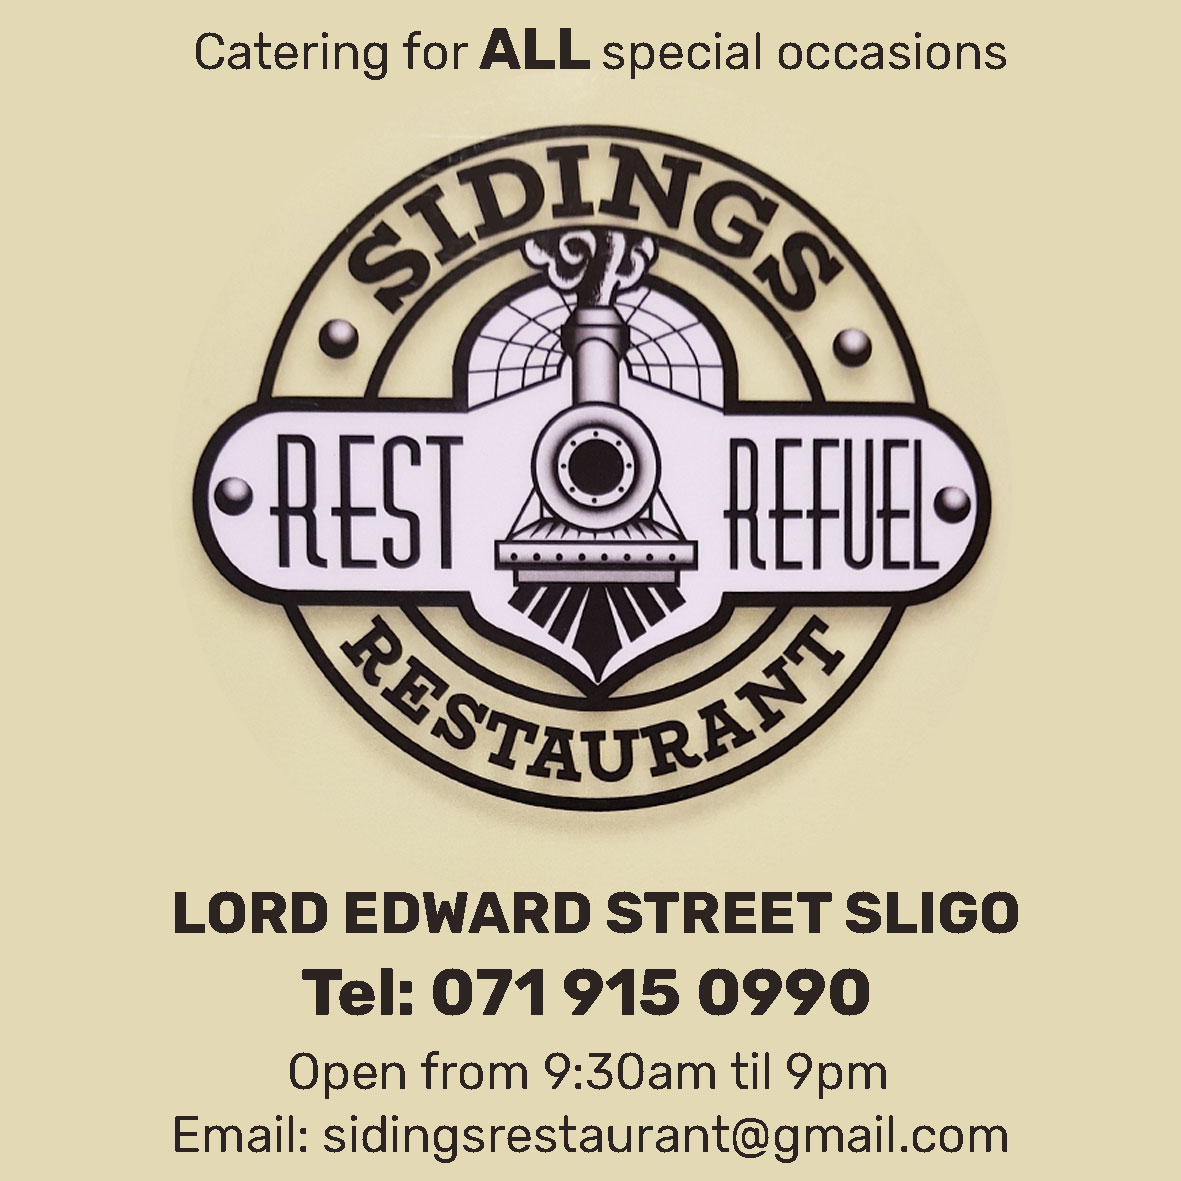 Sidings Restaurant